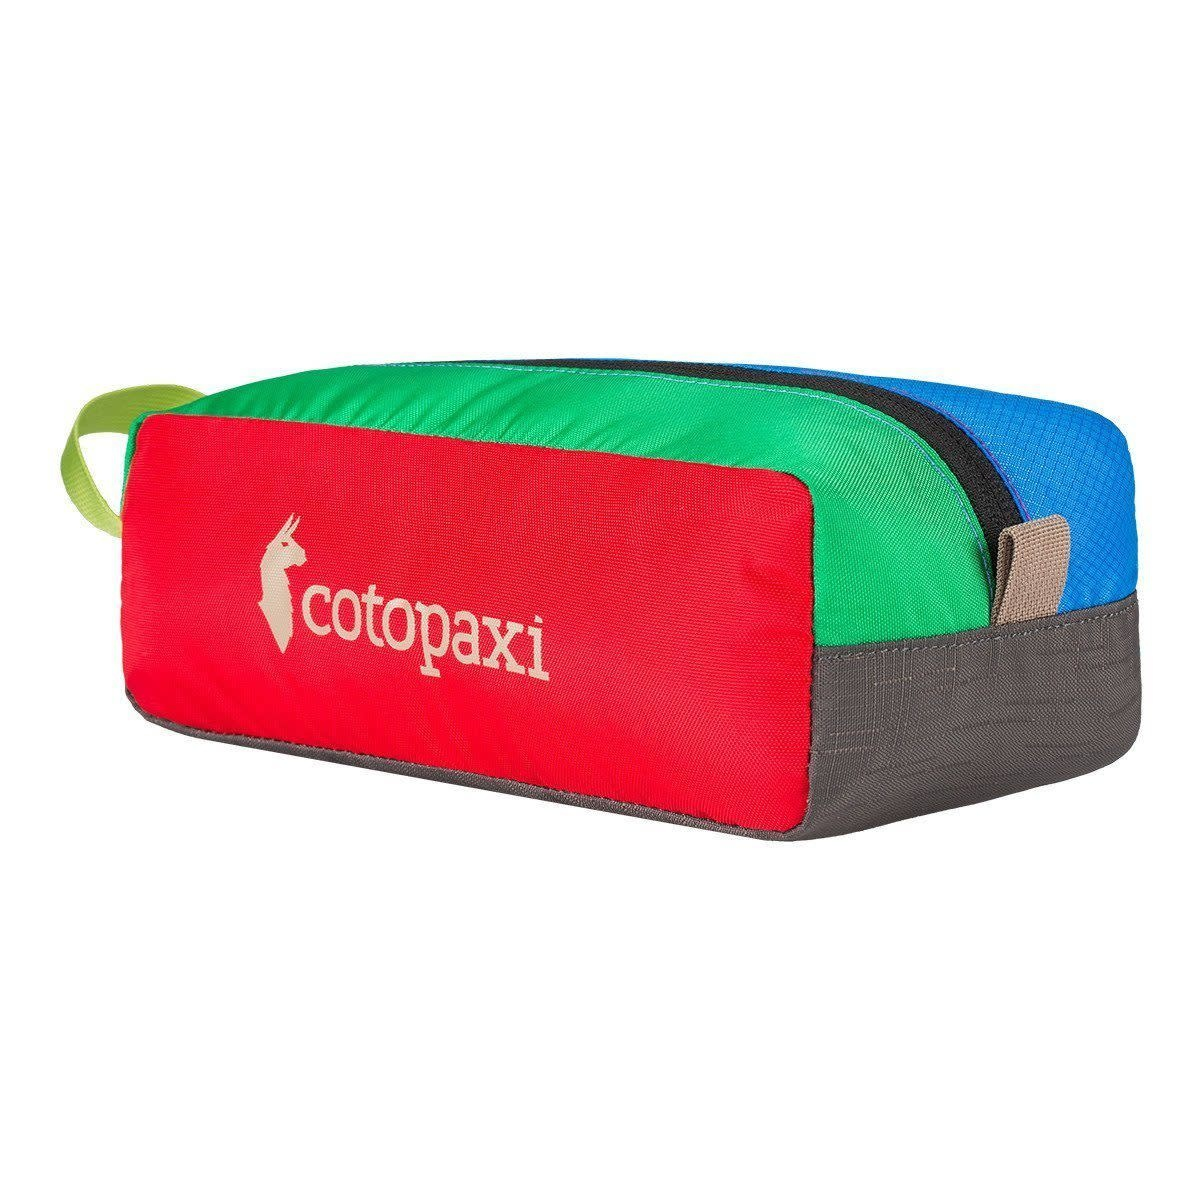 Cotopaxi Dopp Kit-2